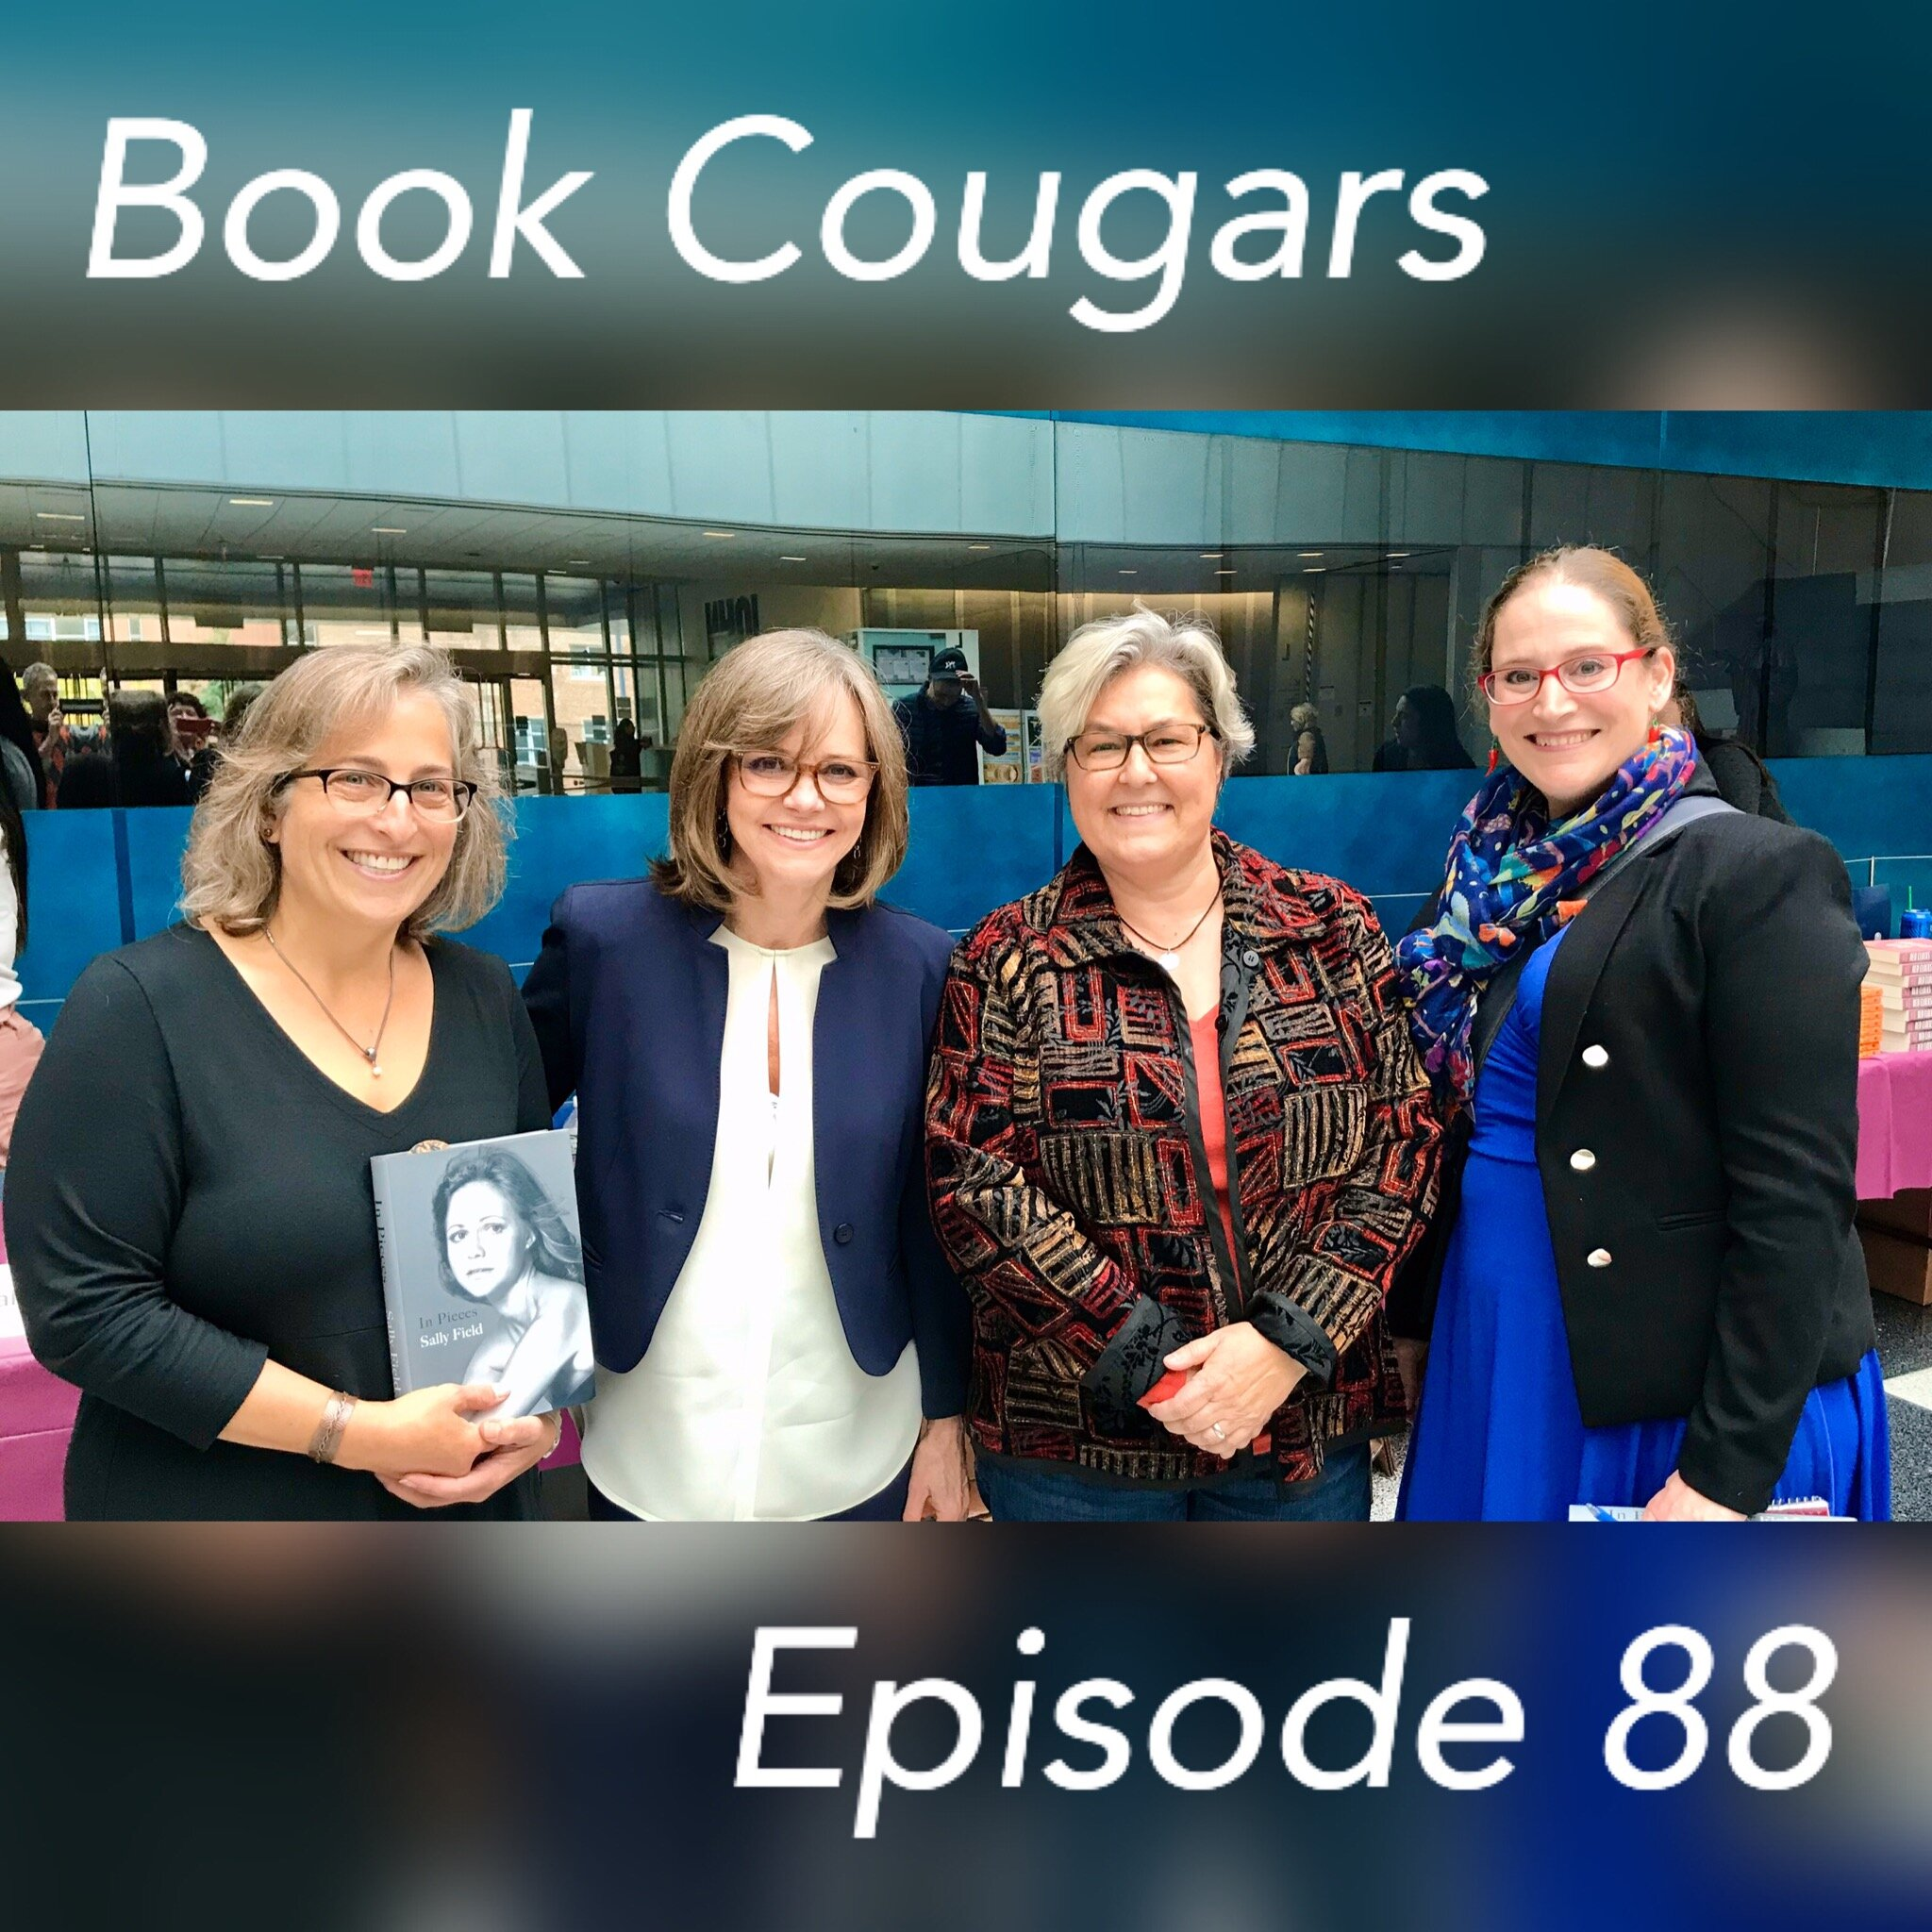 Book Cougars - Episode 88.jpeg